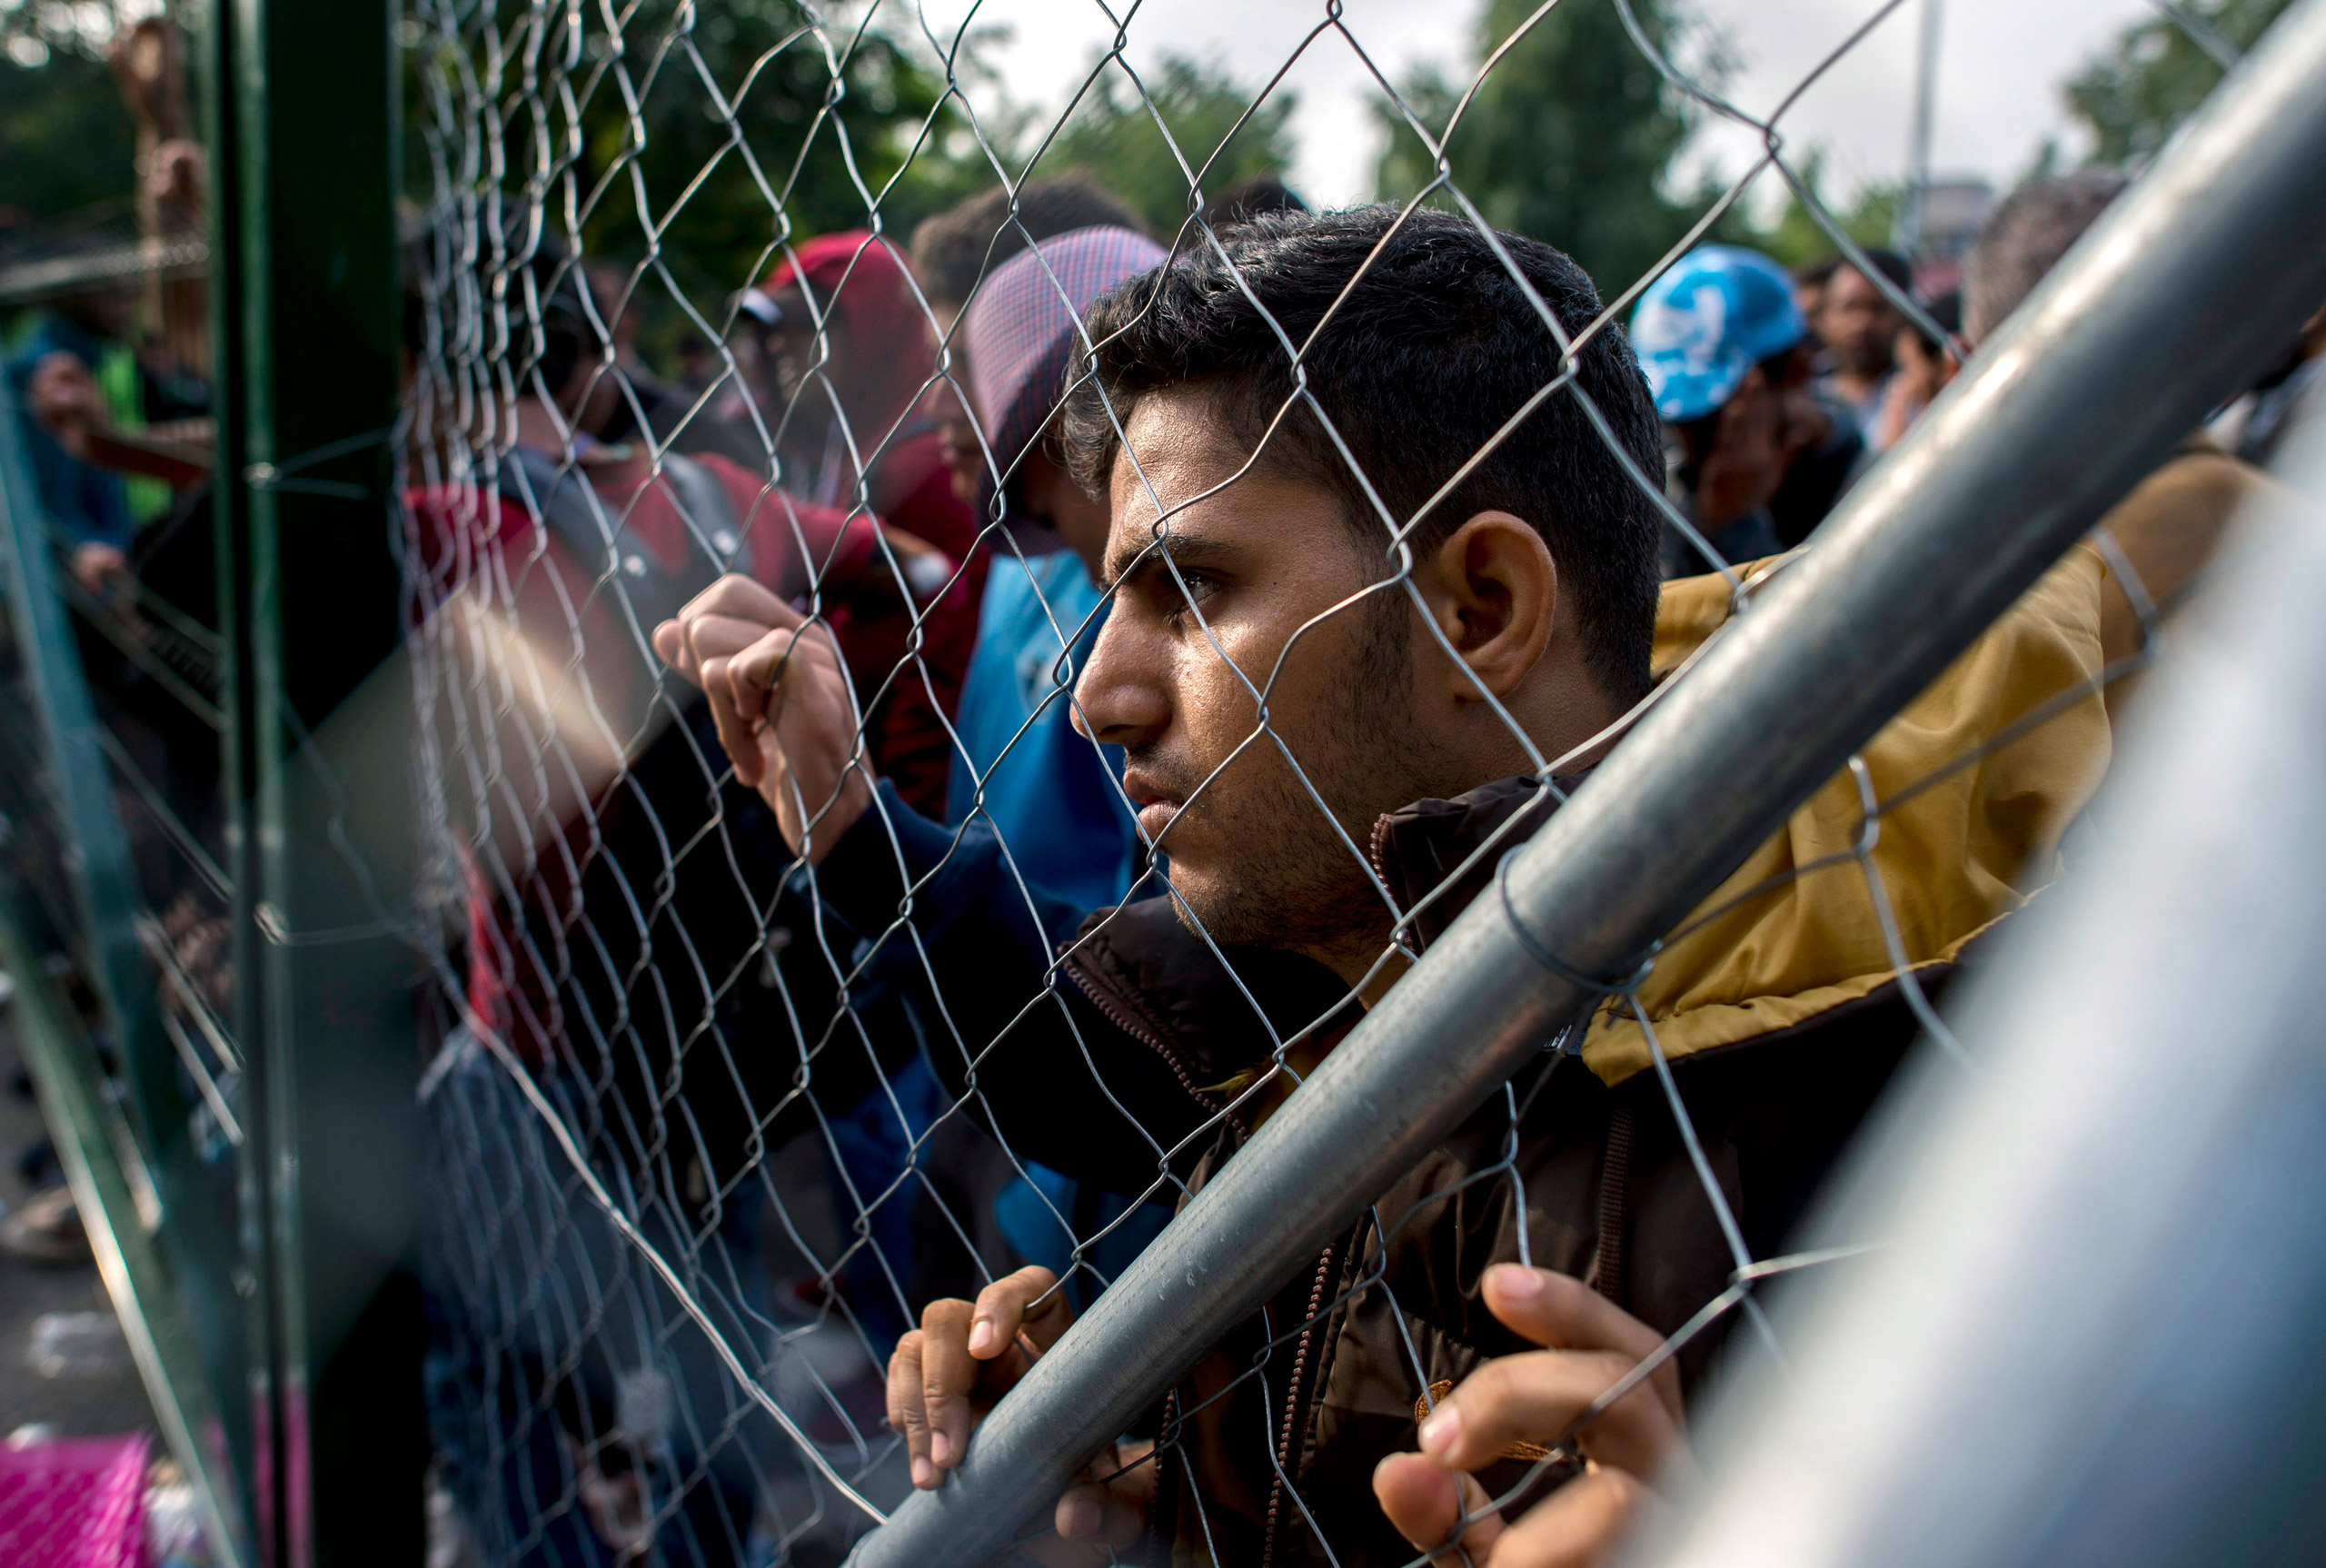 A migrant looks through a fence at the closed border crossing between Hungary and Serbia near Horgos, Serbia, on Sept. 15, 2015.